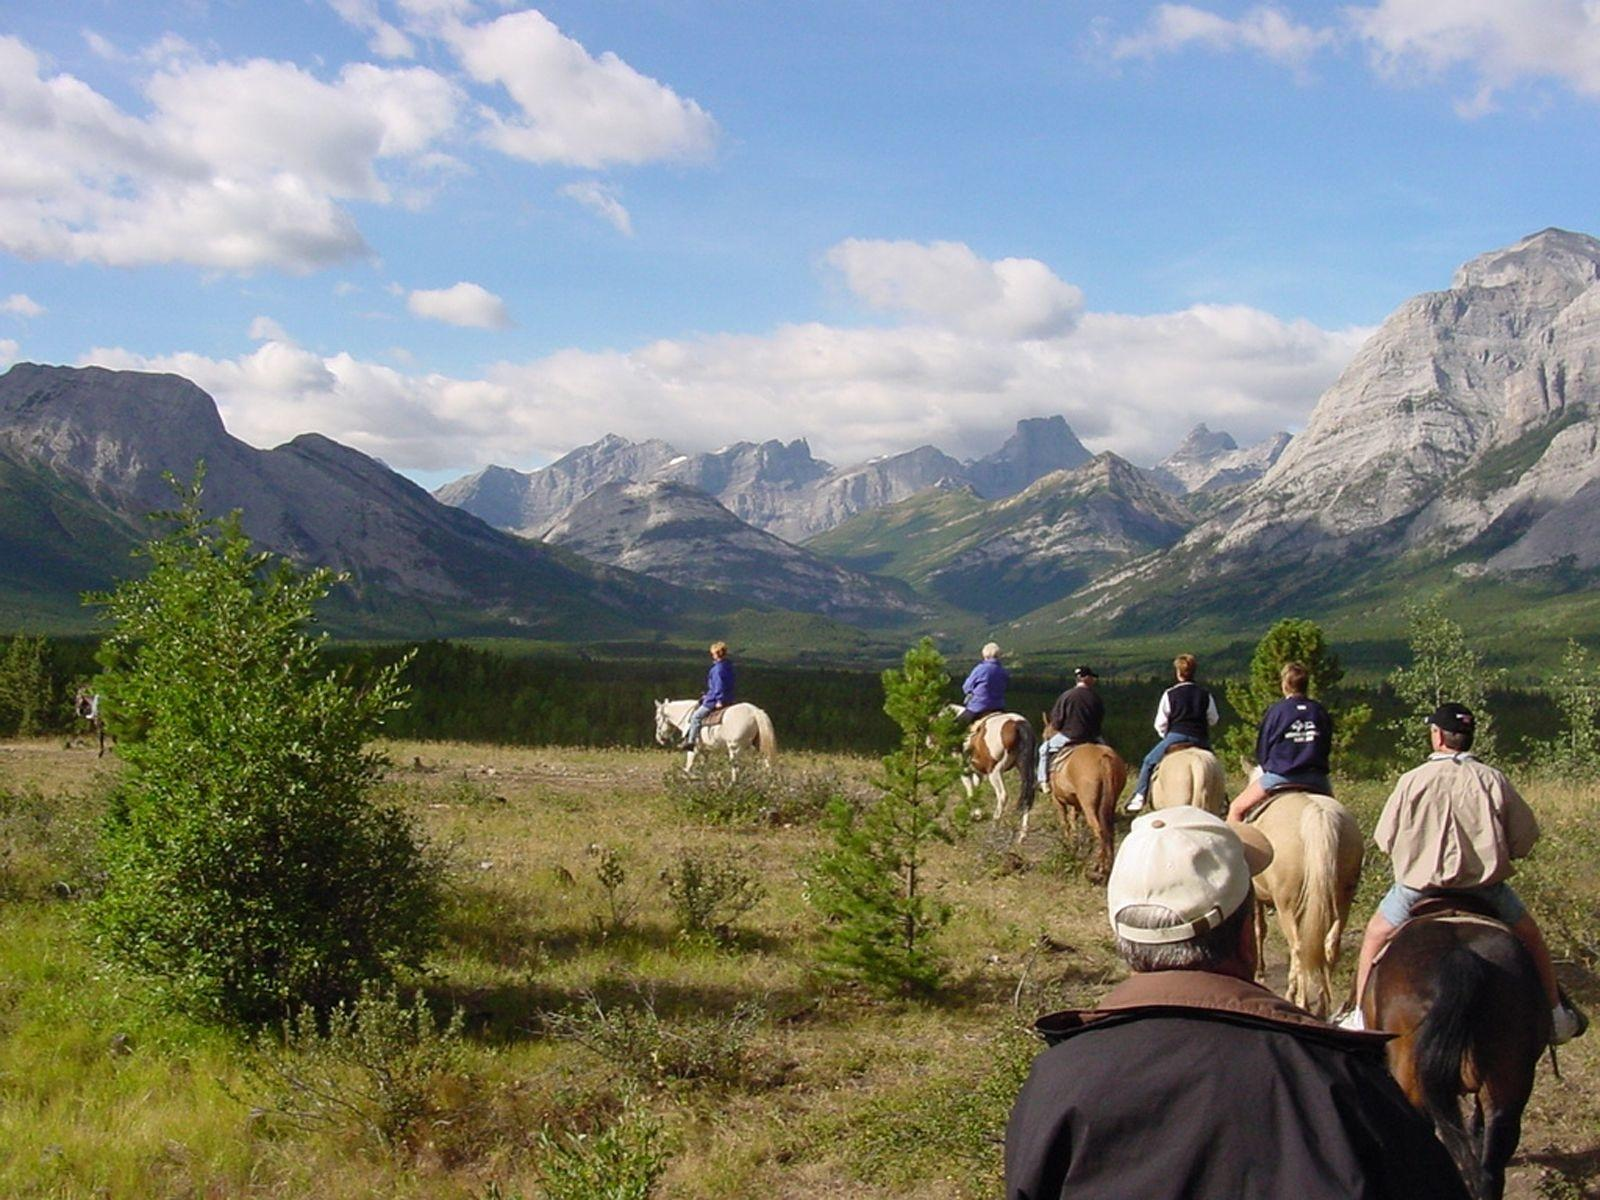 Horseback riding in mountains